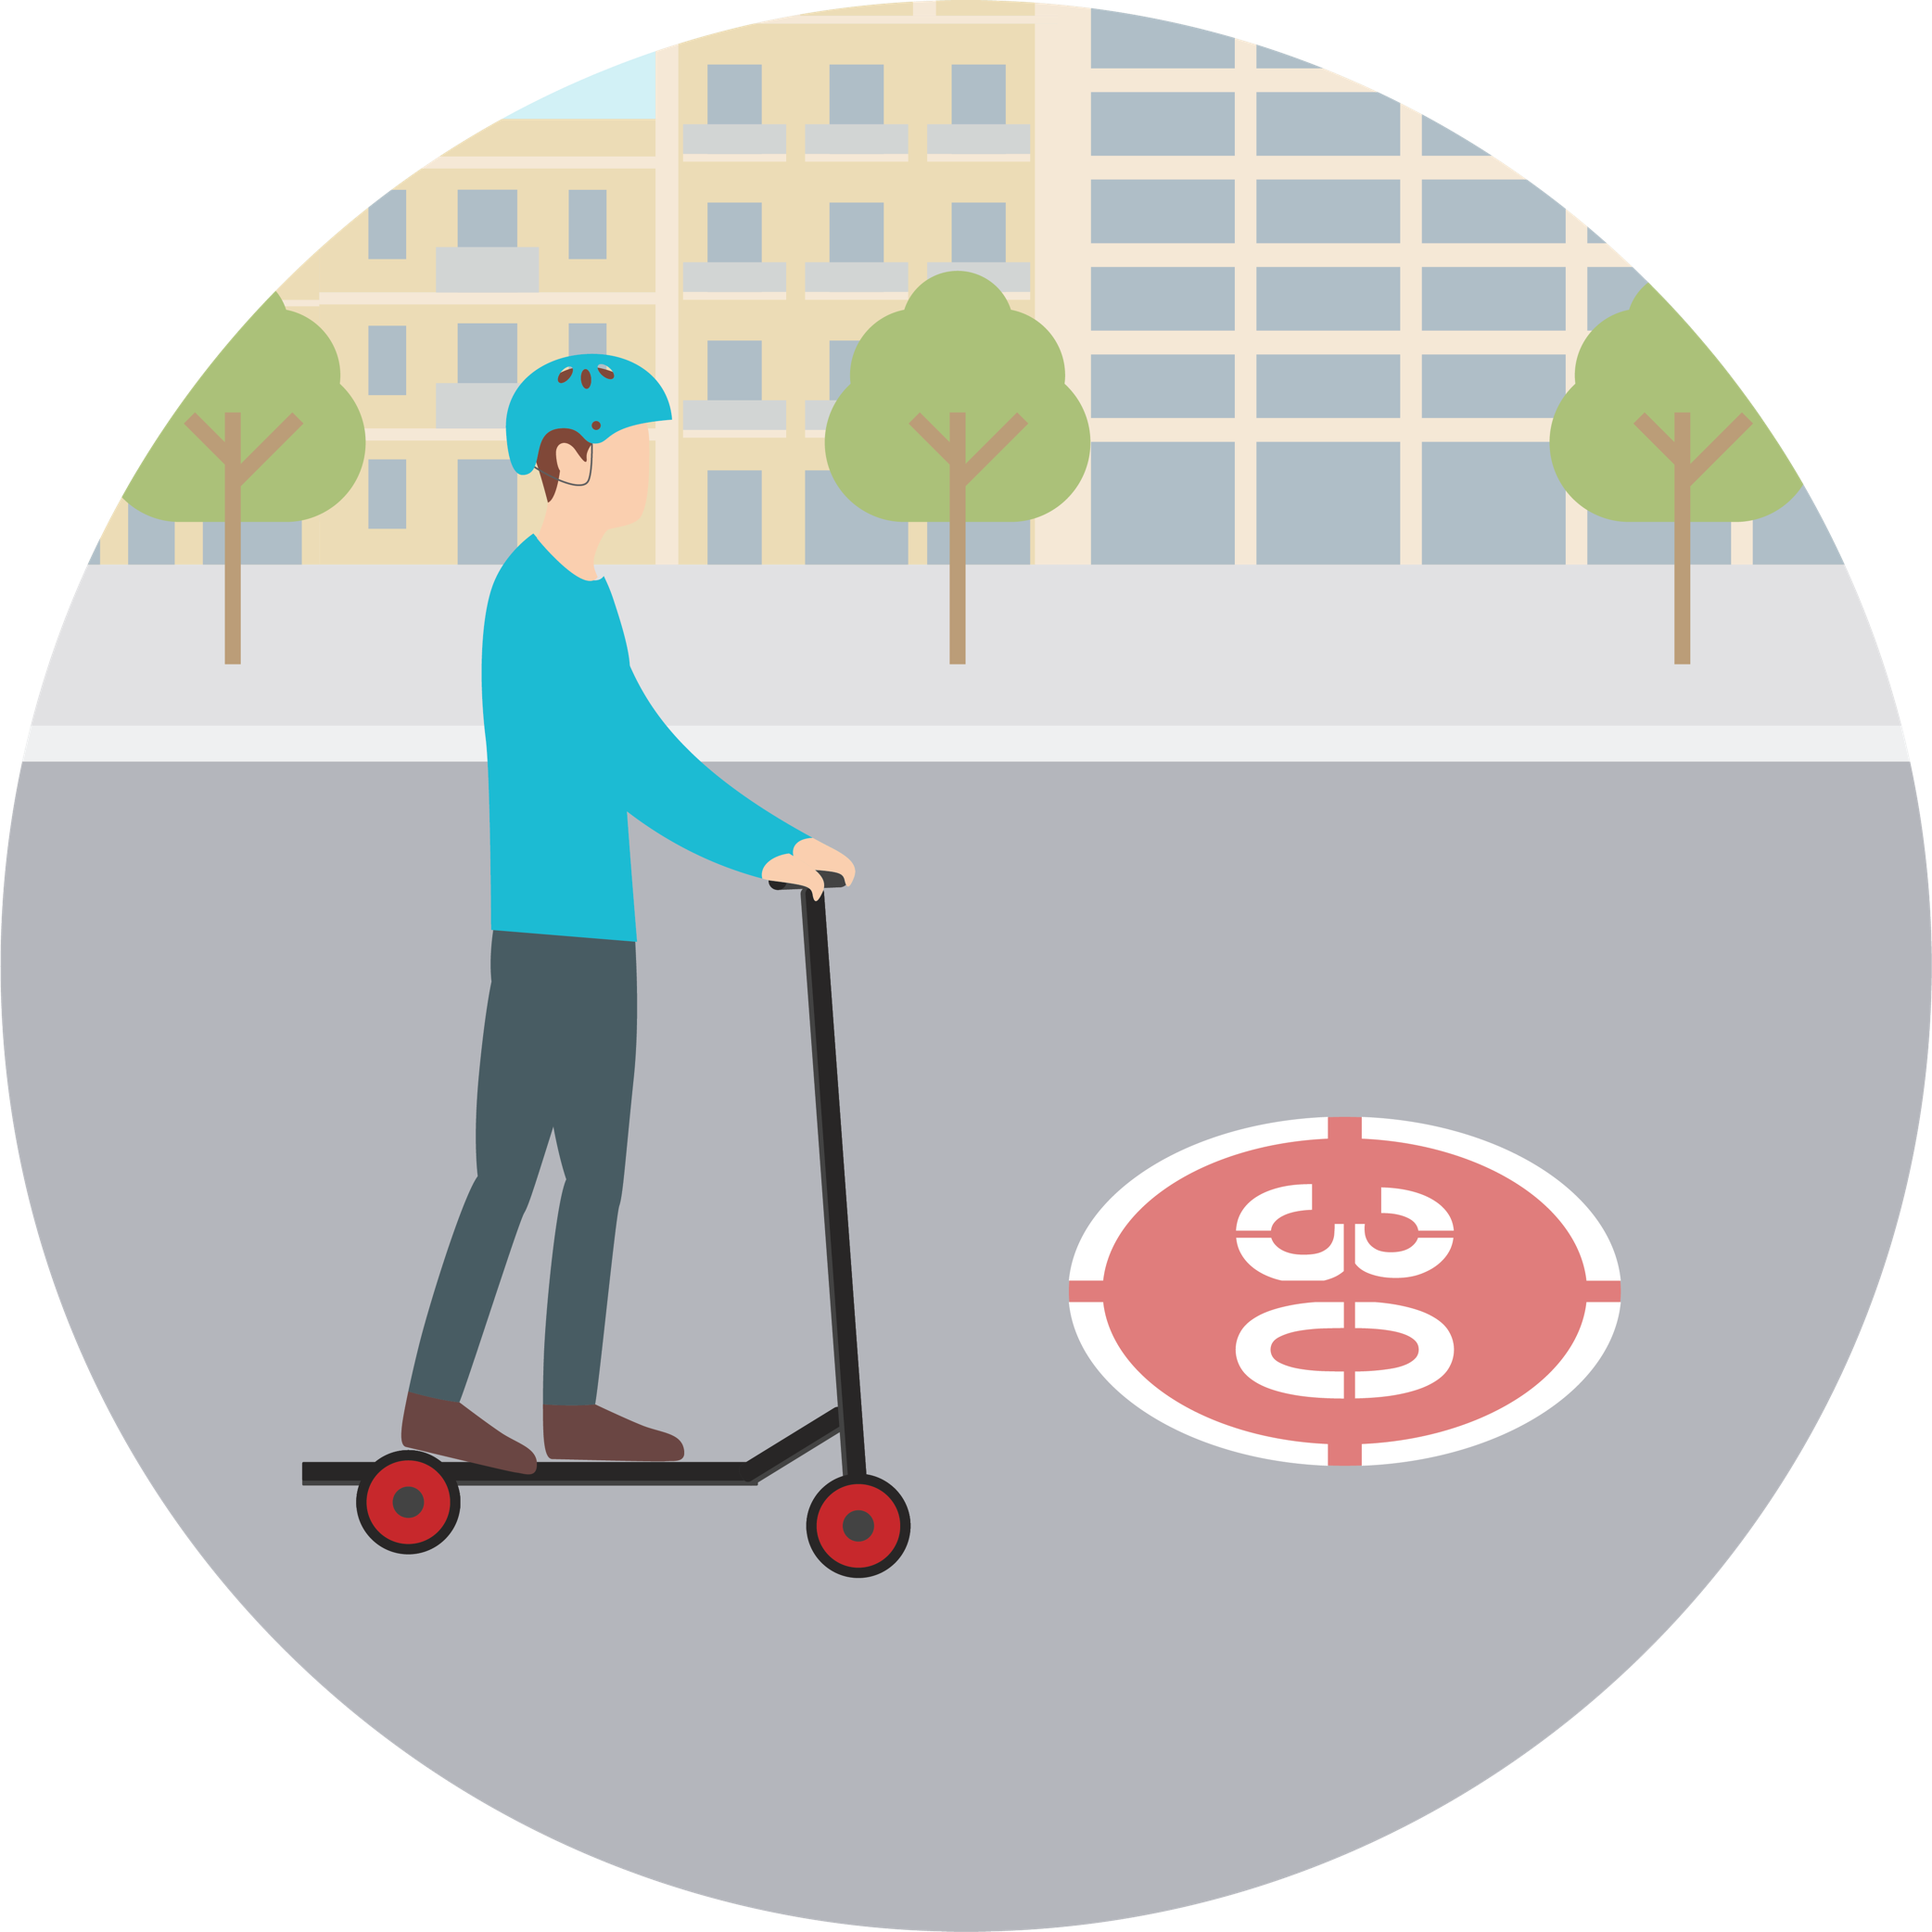 Can I ride electric scooters on the 30 km/h lane in Barcelona?